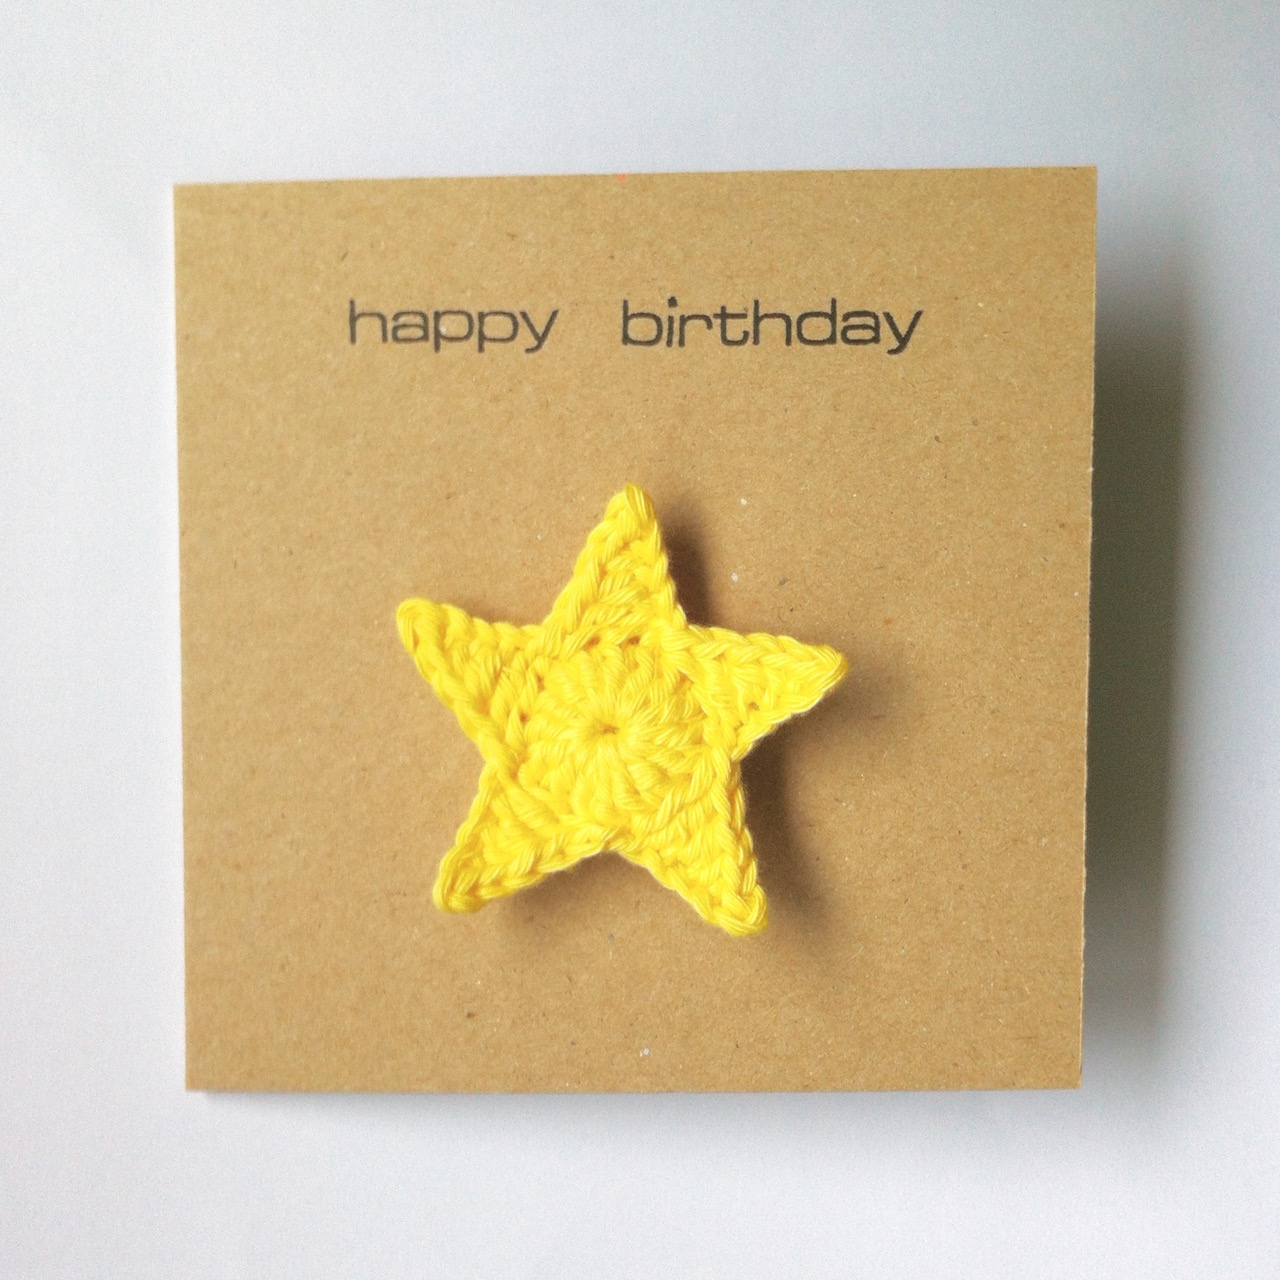 Greetings Card with Star Brooch